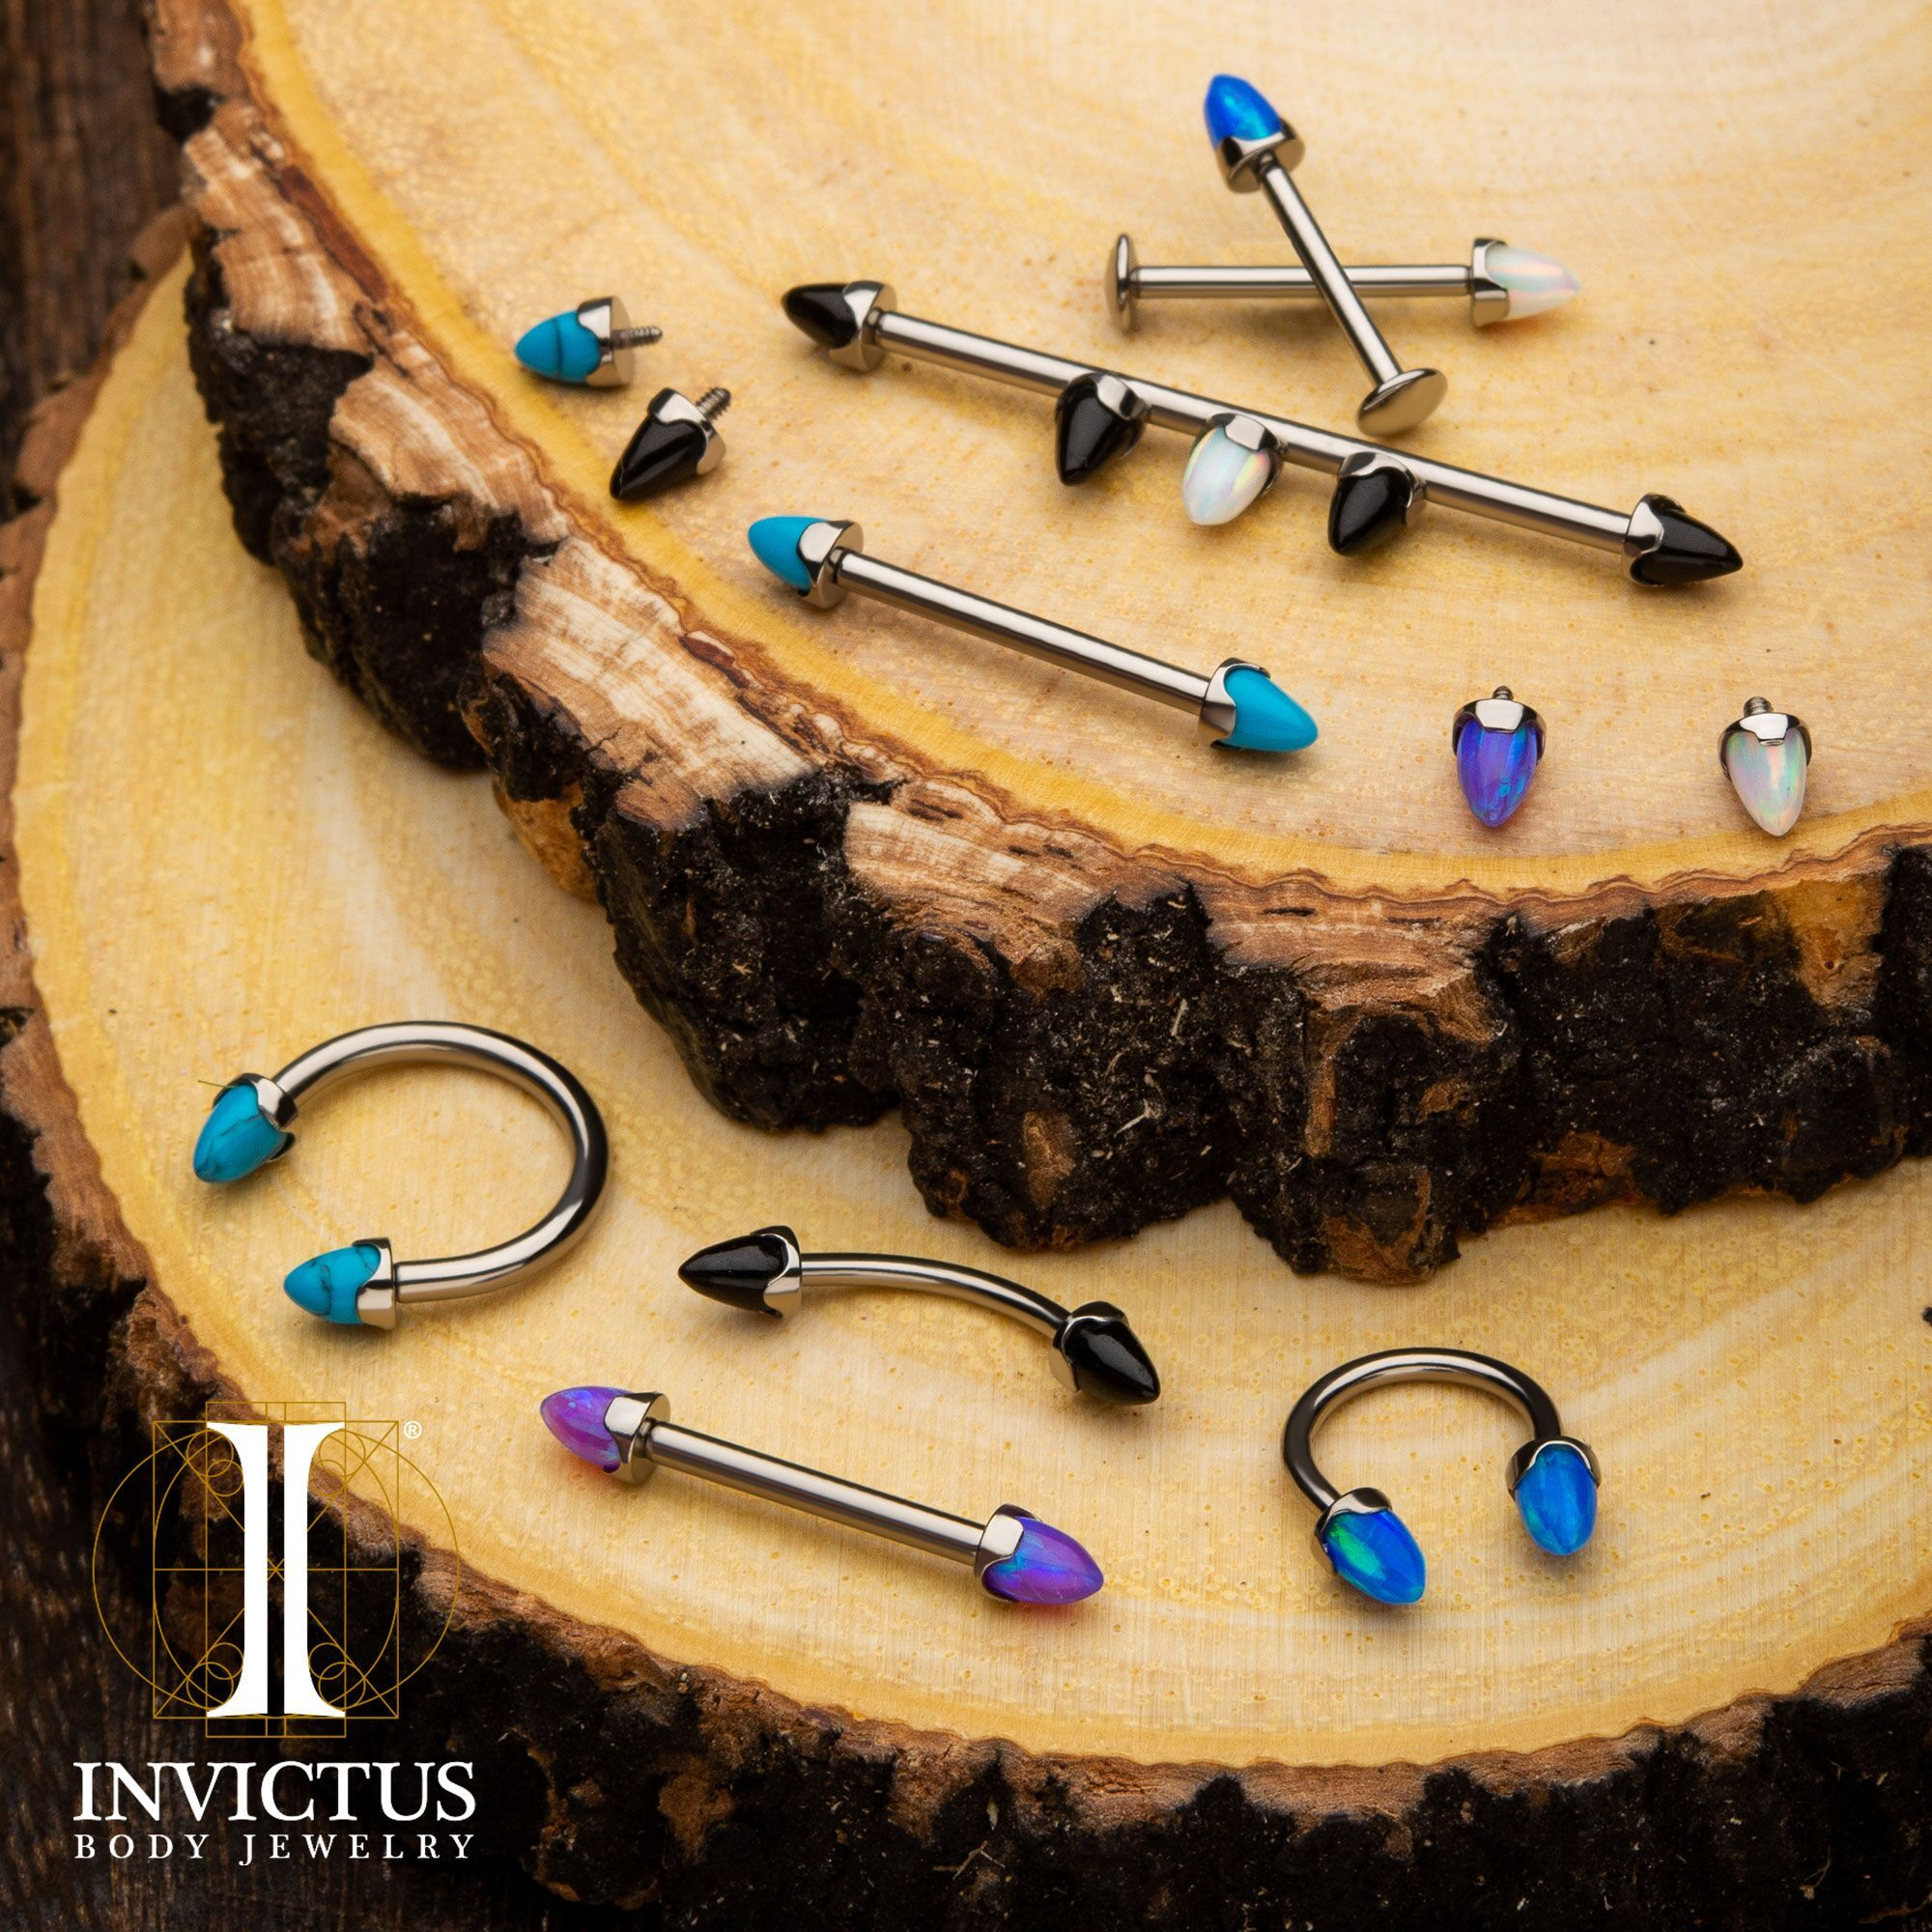 Fancy a barbell? A scaffold? A curved barbell? Anything at all with these shiny prong spikes in a selection of opalescent colors that will add some color in your punk rock life.    #invictusjewelry #invictus #invictusbodyjewelry #jewelry #pierced #piercings #peoplewithpiercings #pierced #titanium #titaniumjewerly #gorgeous #14kgold #14kgoldjewerly #love #beautiful #threadlessjewelry #freshpiercing  #InvictusLove #interallythreadedjewelry #safepiercing #earrangement #bodyjewelry